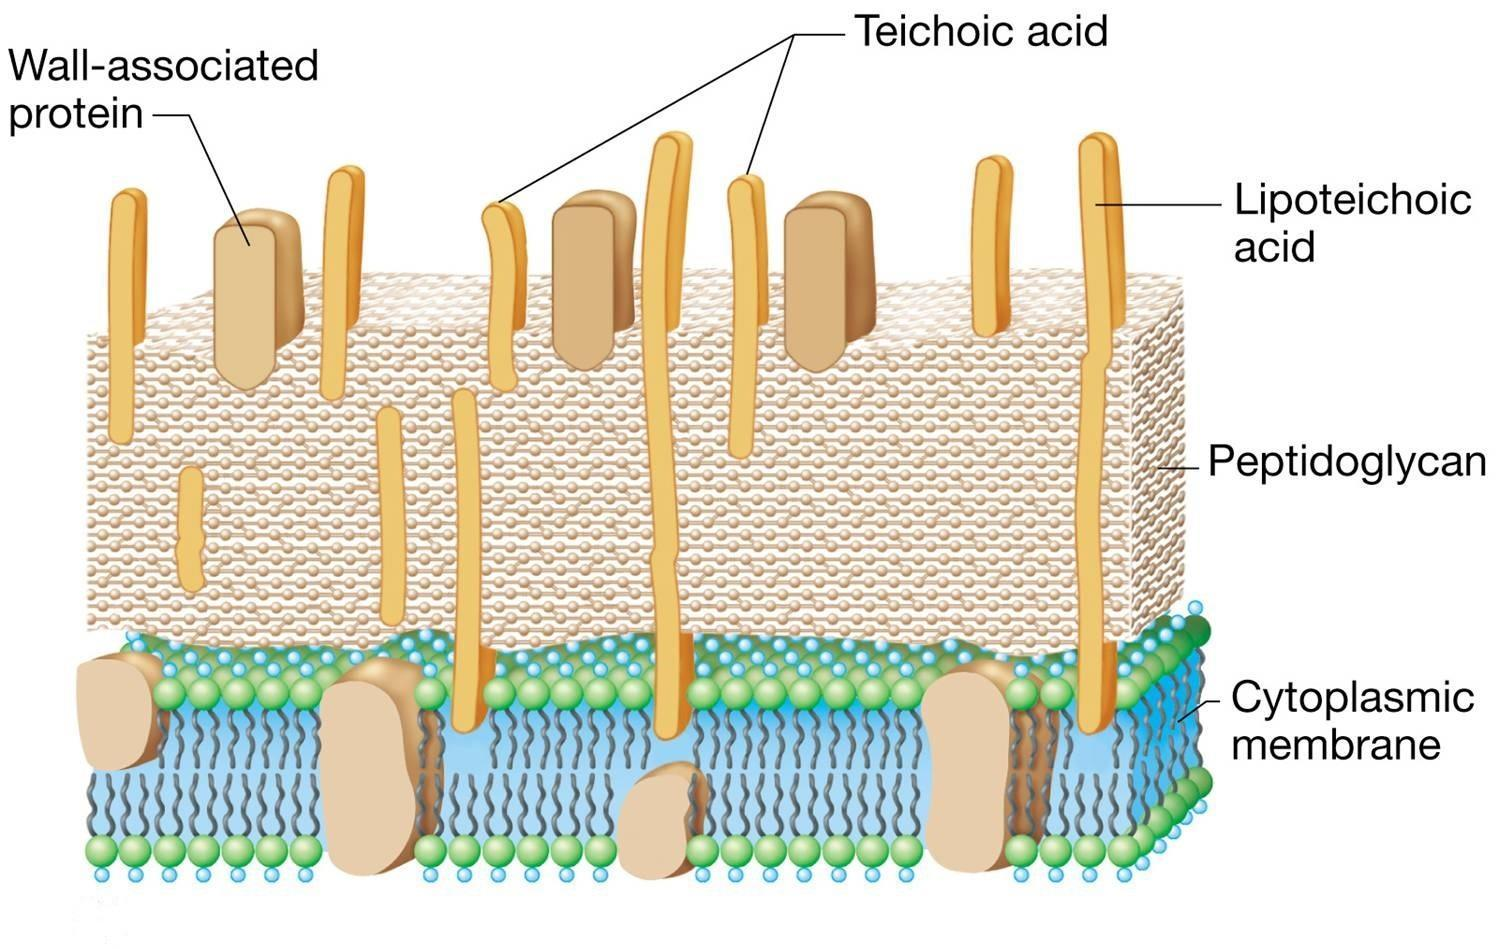 gram positive cell wall diagram ge motor 5kc wiring teichoic acid lipoteichoic characteristics and